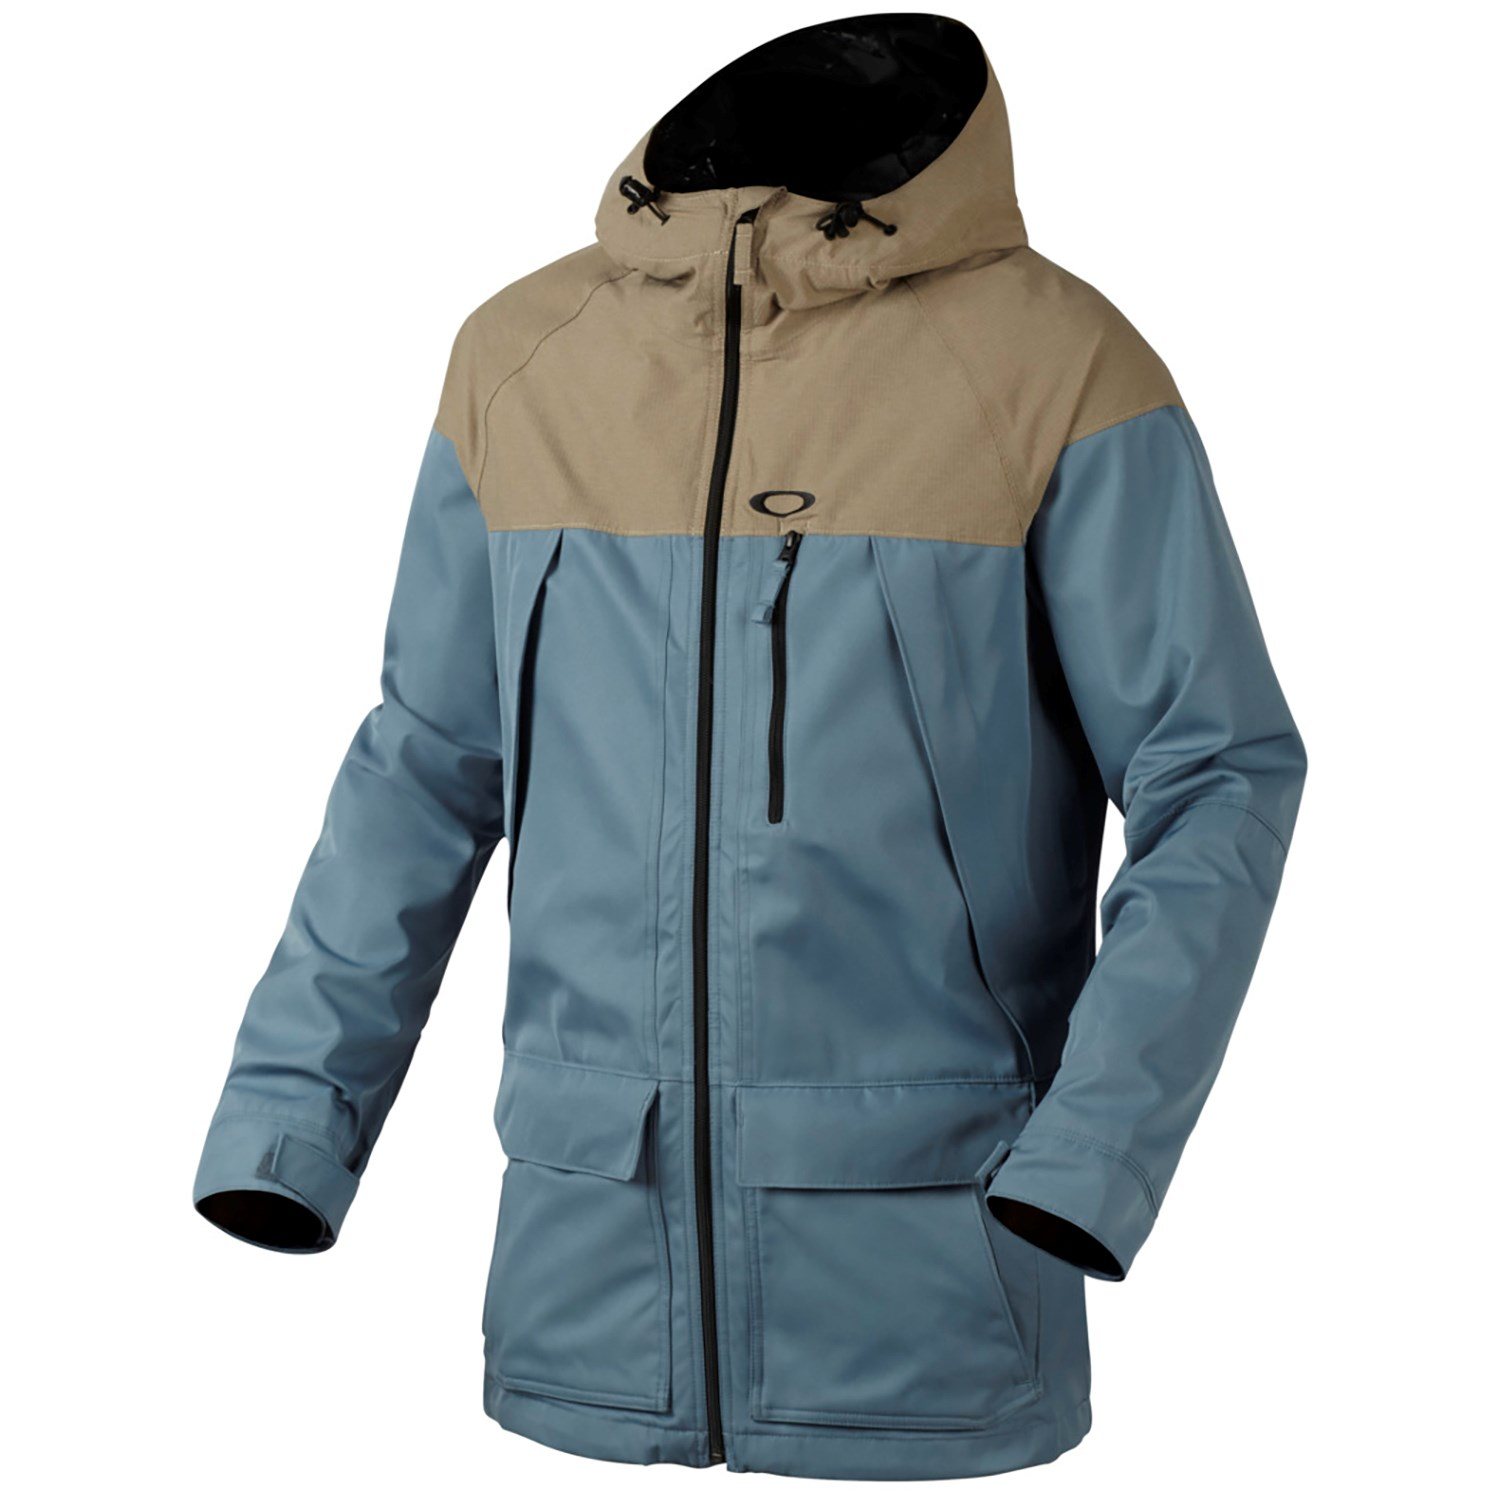 oakley ski pants on sale  oakley silver fox biozone? jacket $249.95 $199.99 sale